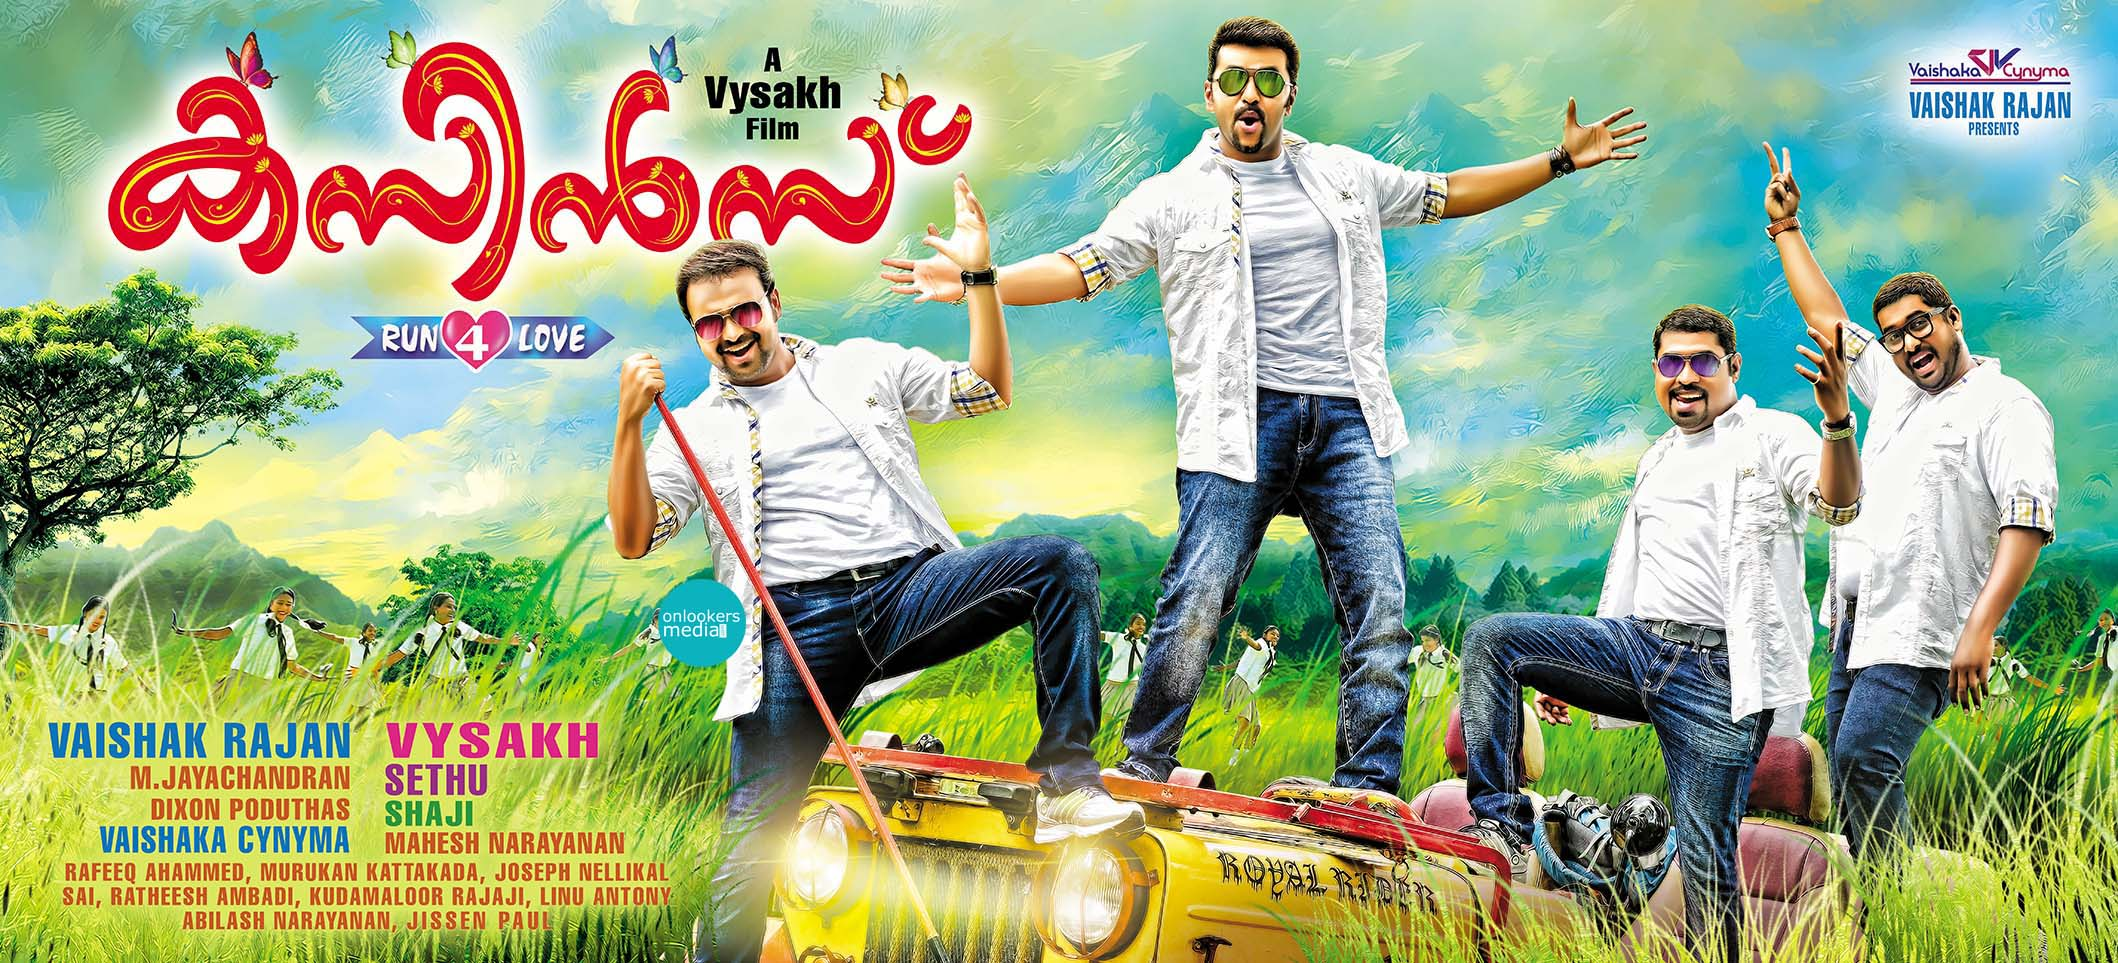 http://onlookersmedia.in/wp-content/uploads/2014/12/Cousins-Posters-Stills-Images-Review-Report-Collection-Kunchacko-Boban-Indrajith-Nisha-Agarwal-Vedhika-Miya-Onlookers-Media-15.jpg